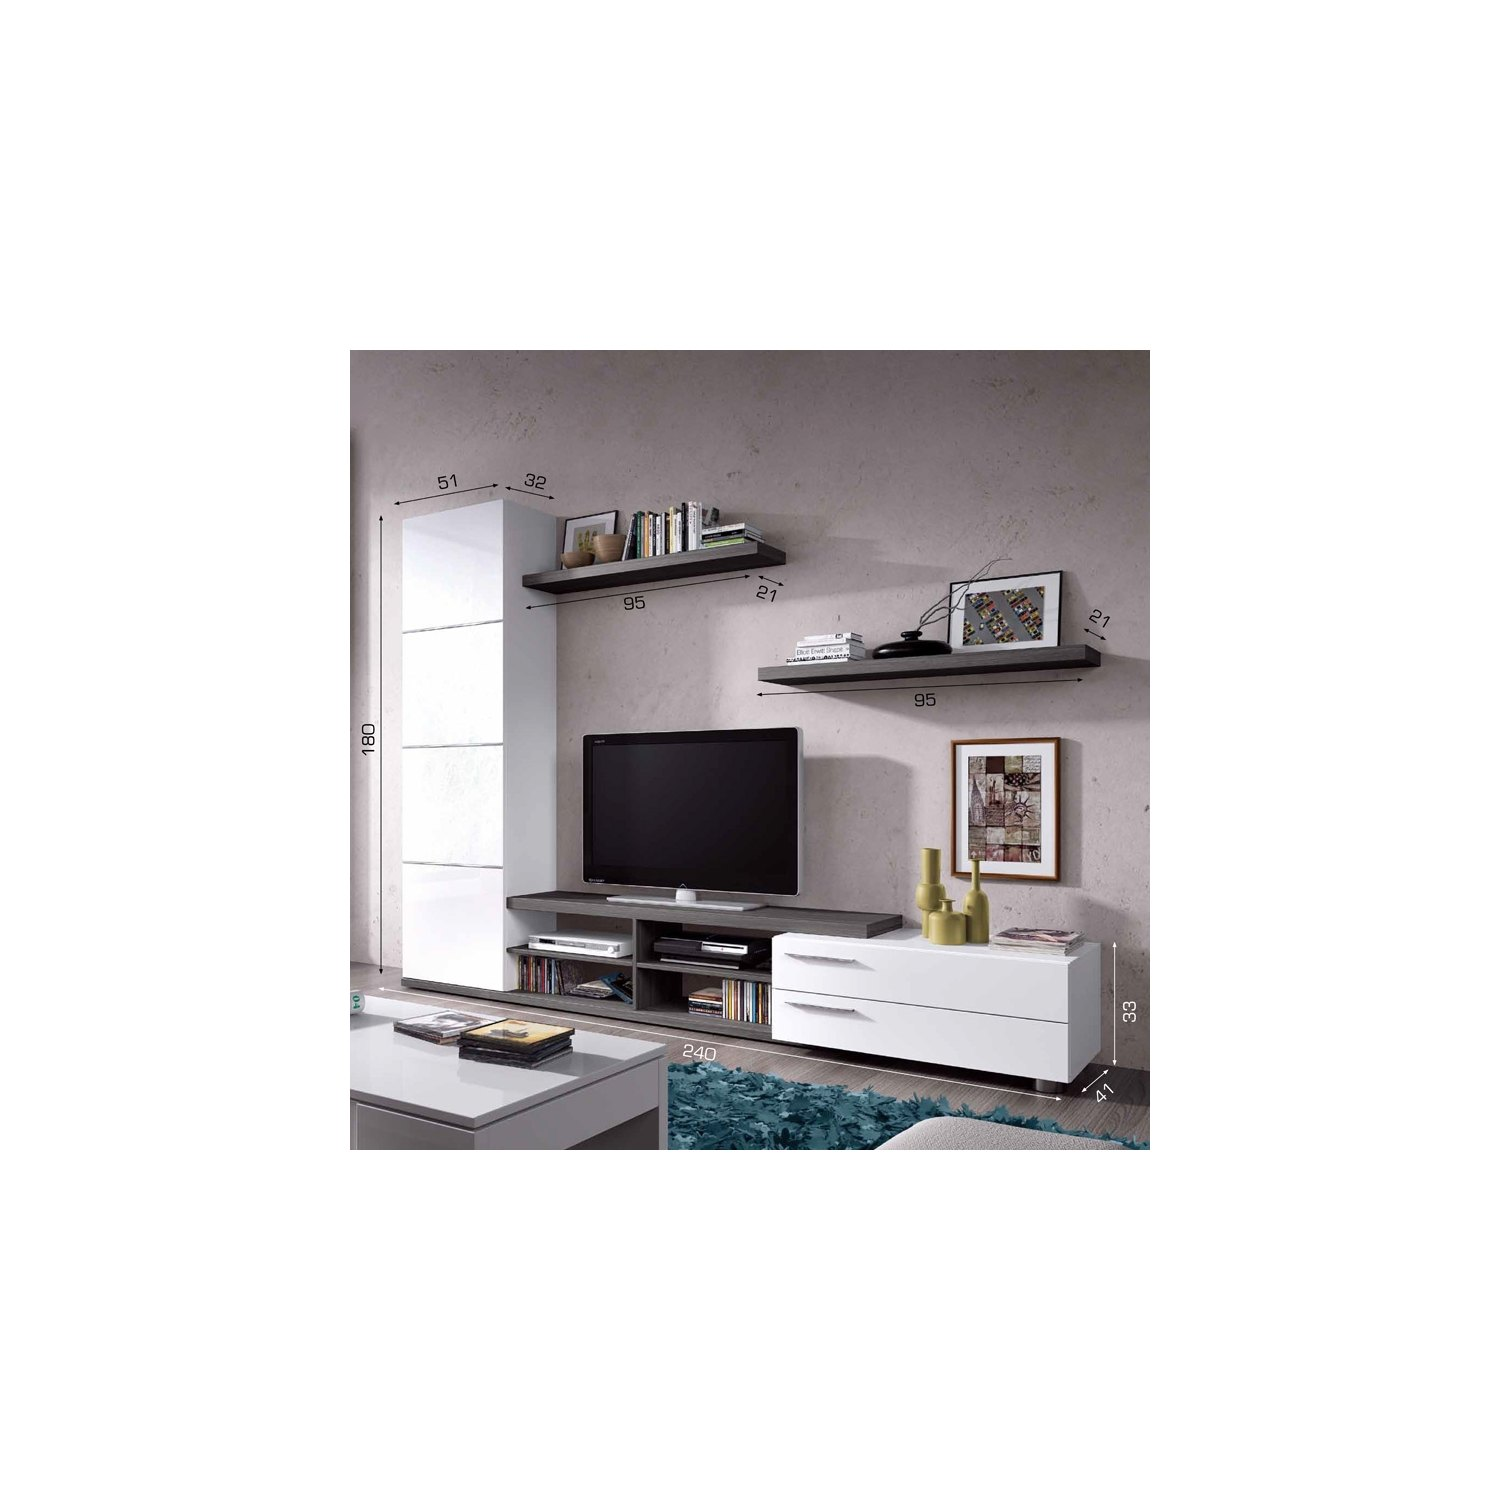 Promotion meubles sur internet meubles de salon for Meuble tv mural 240 cm blanc gris adhara